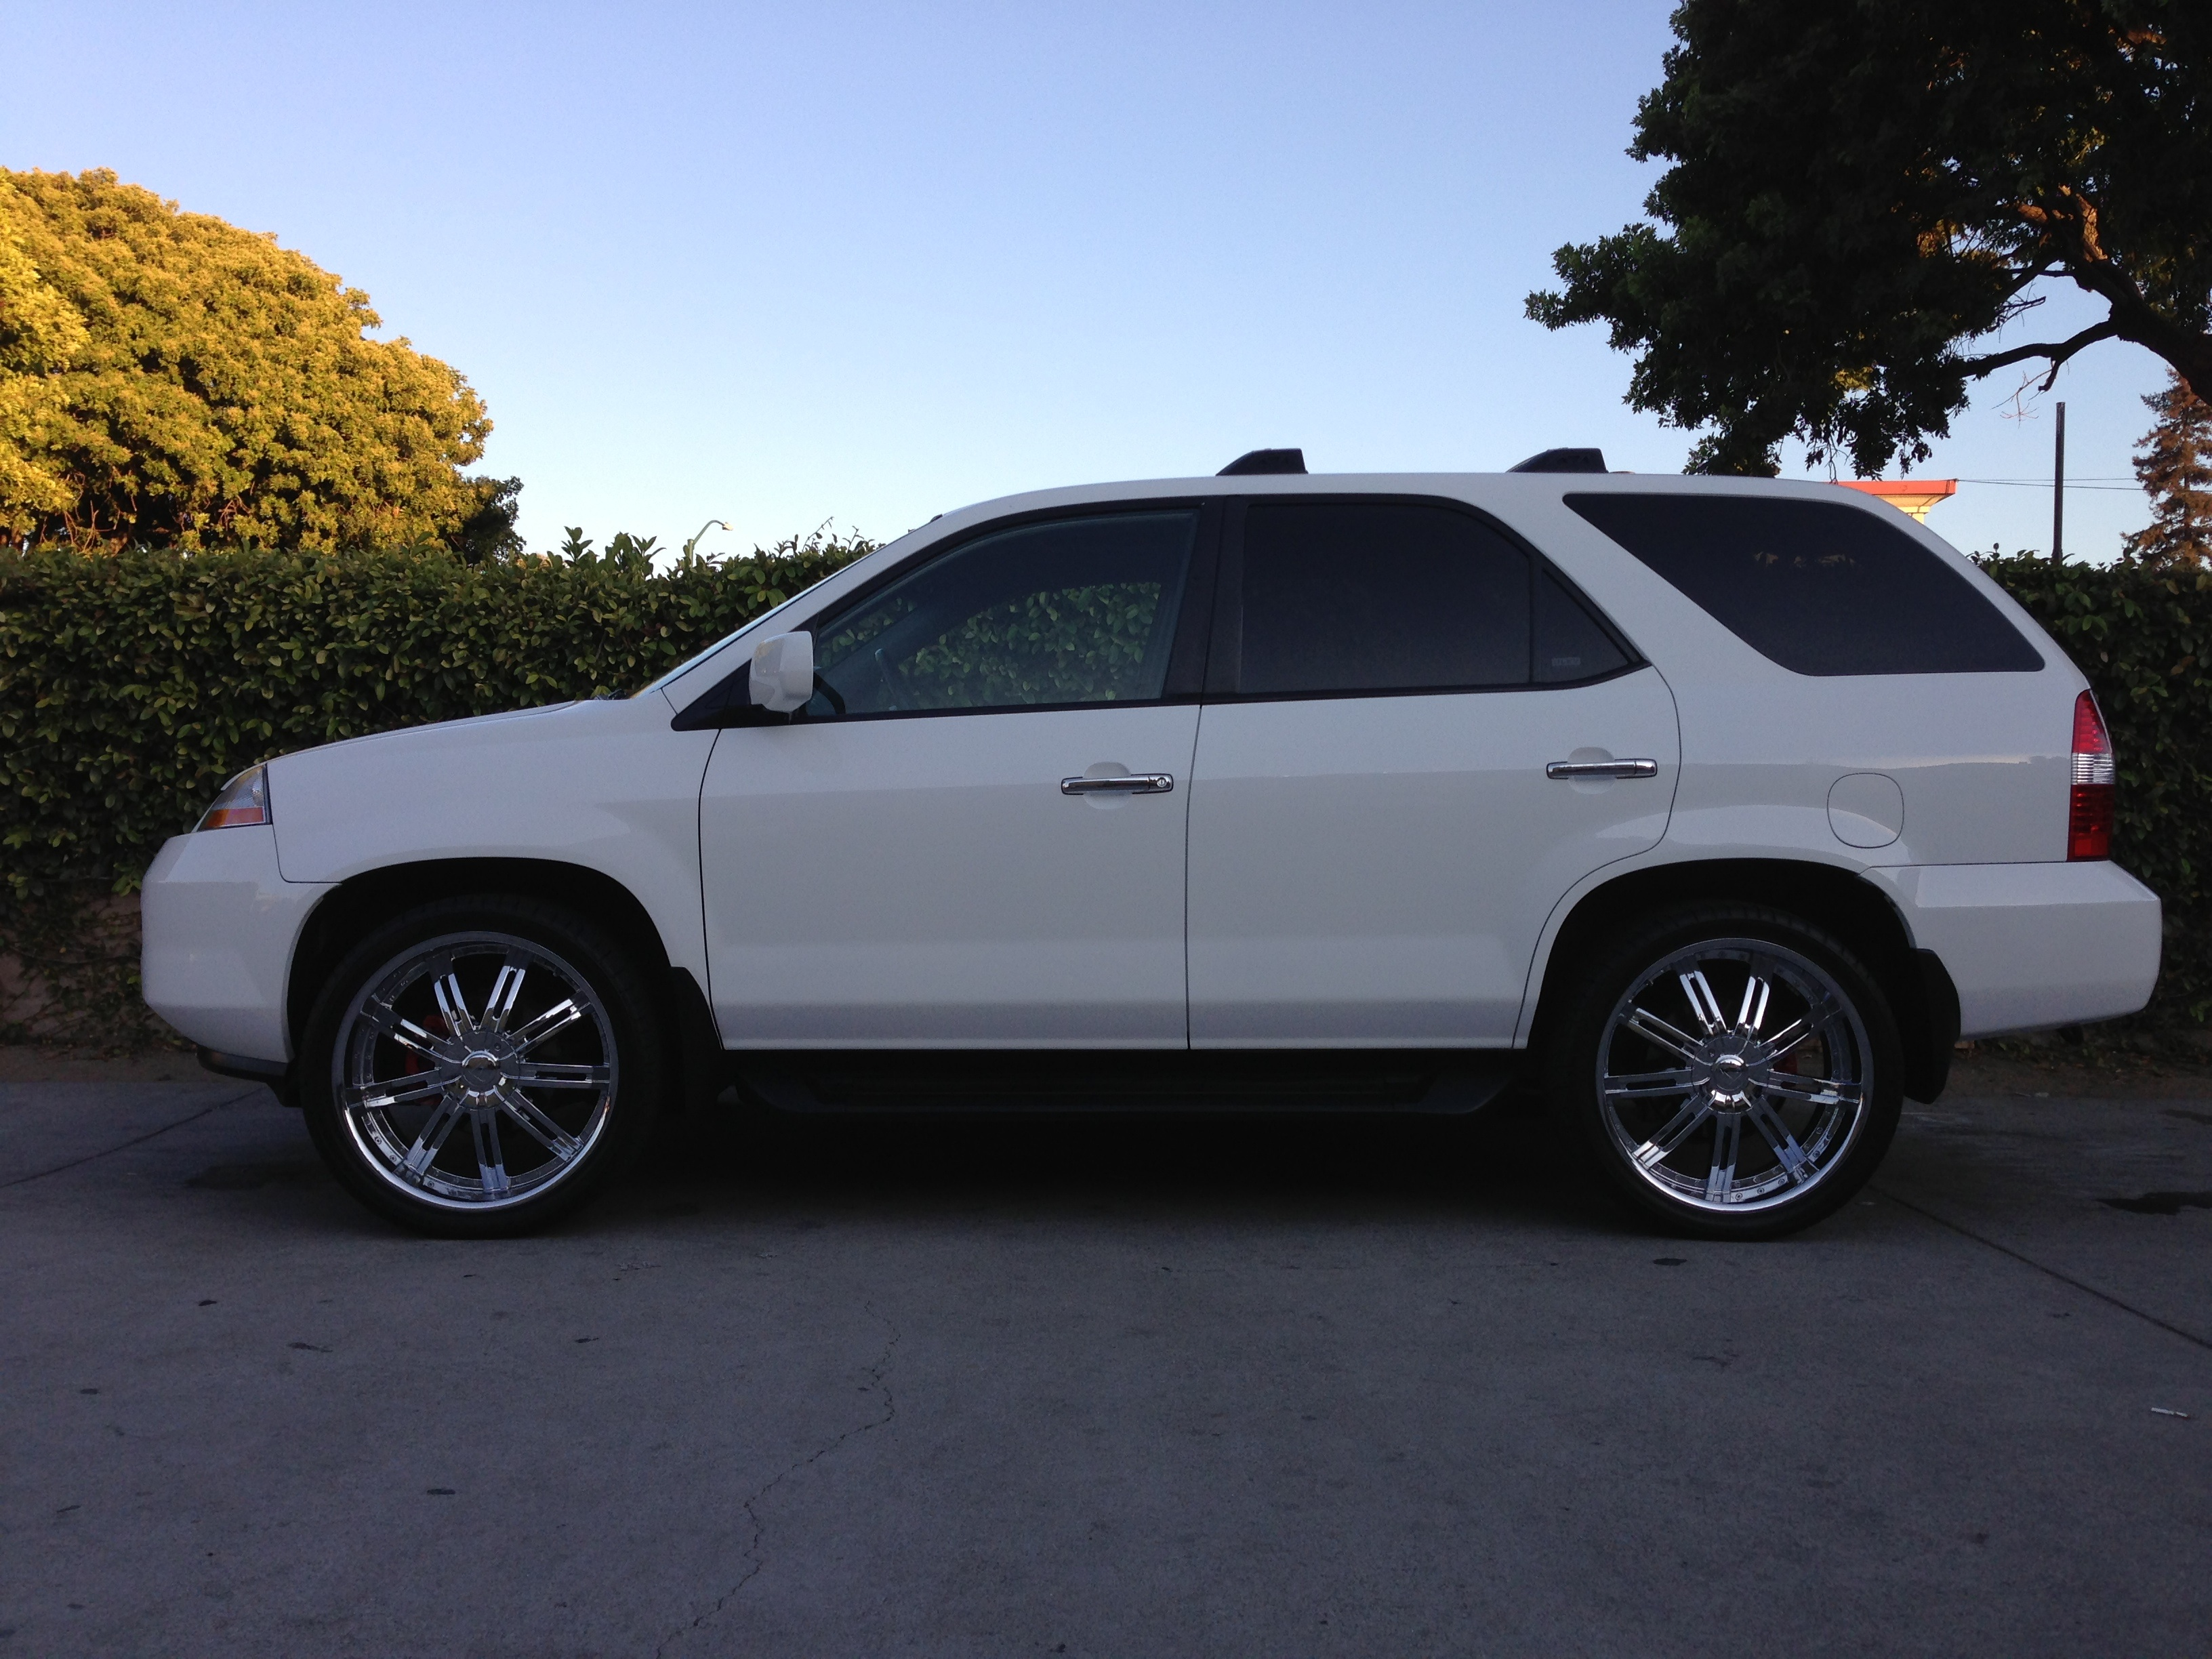 dash features xl incentives mdx int price new acura lease md gallery overview bethesda interior